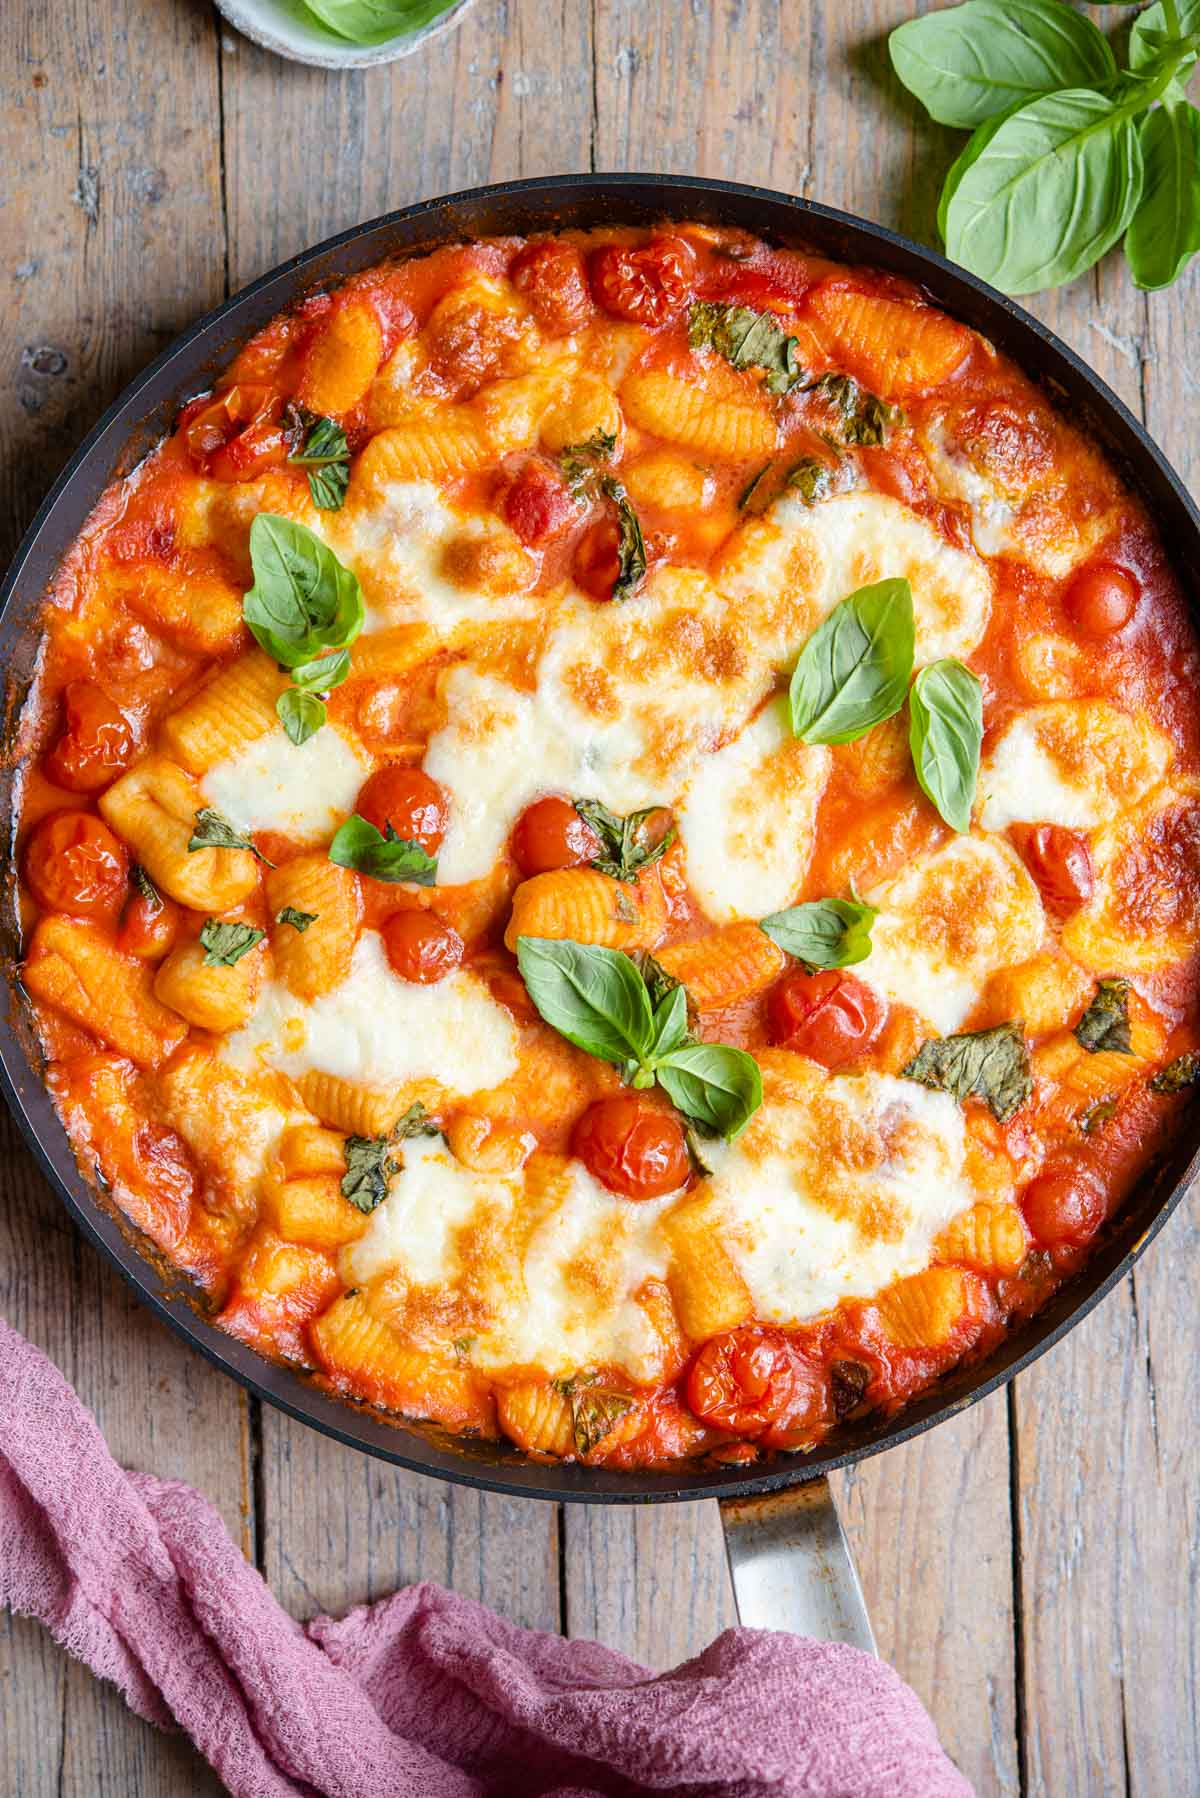 An overhead shot of gnocchi alla sorrentina in a skillet sitting on a wooden surface